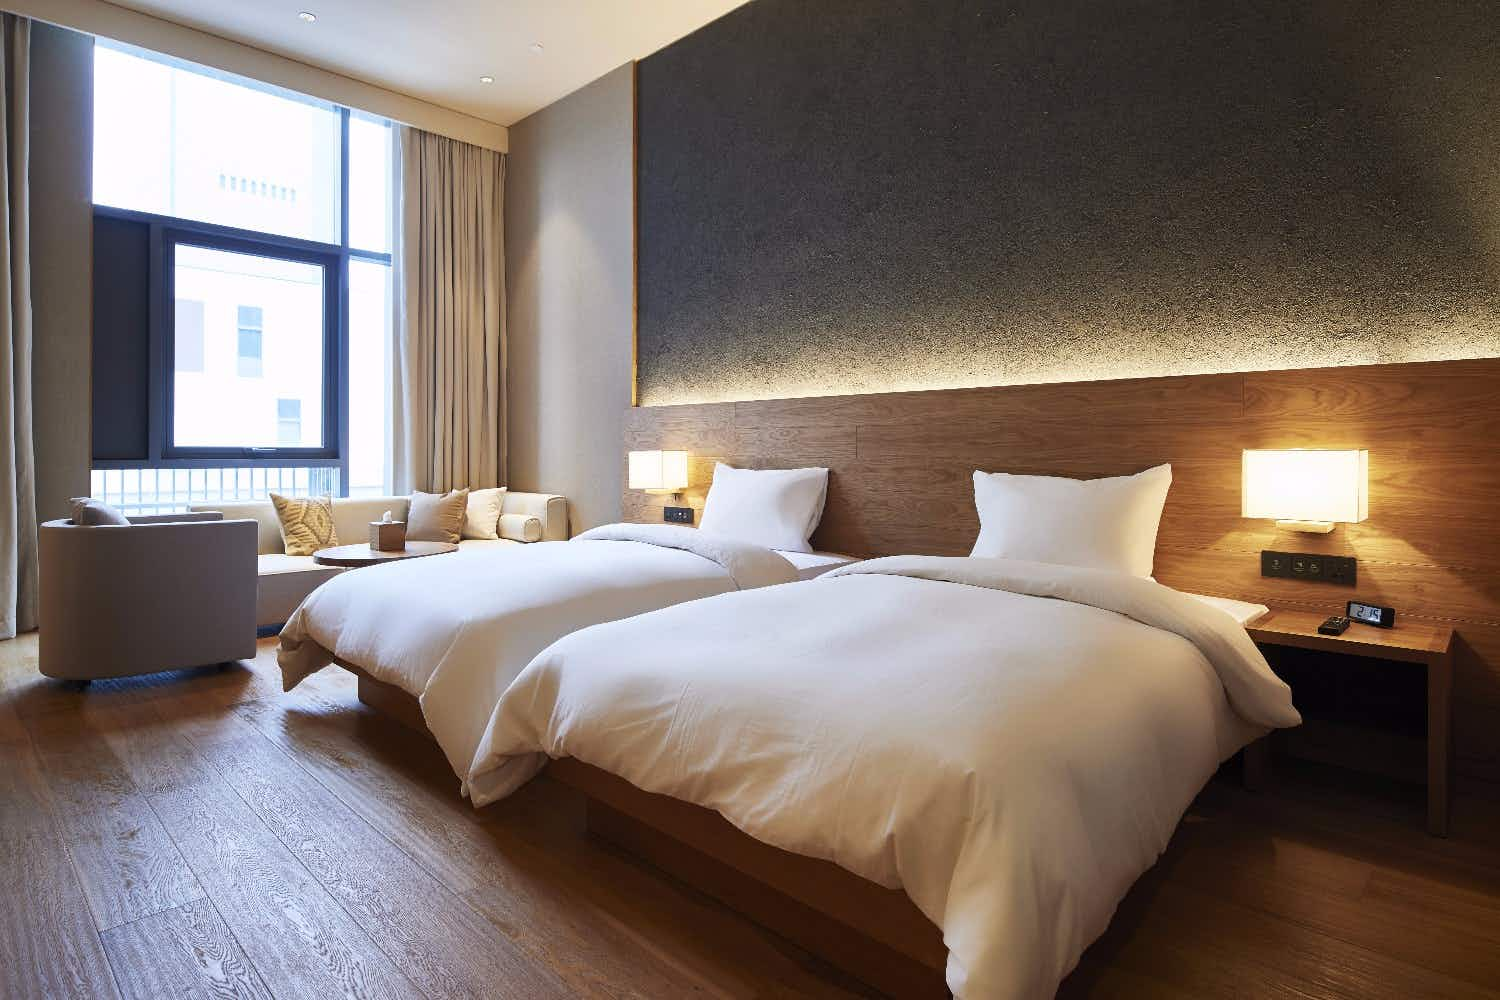 You've shopped the store, now you can stay in the new MUJI hotel in China